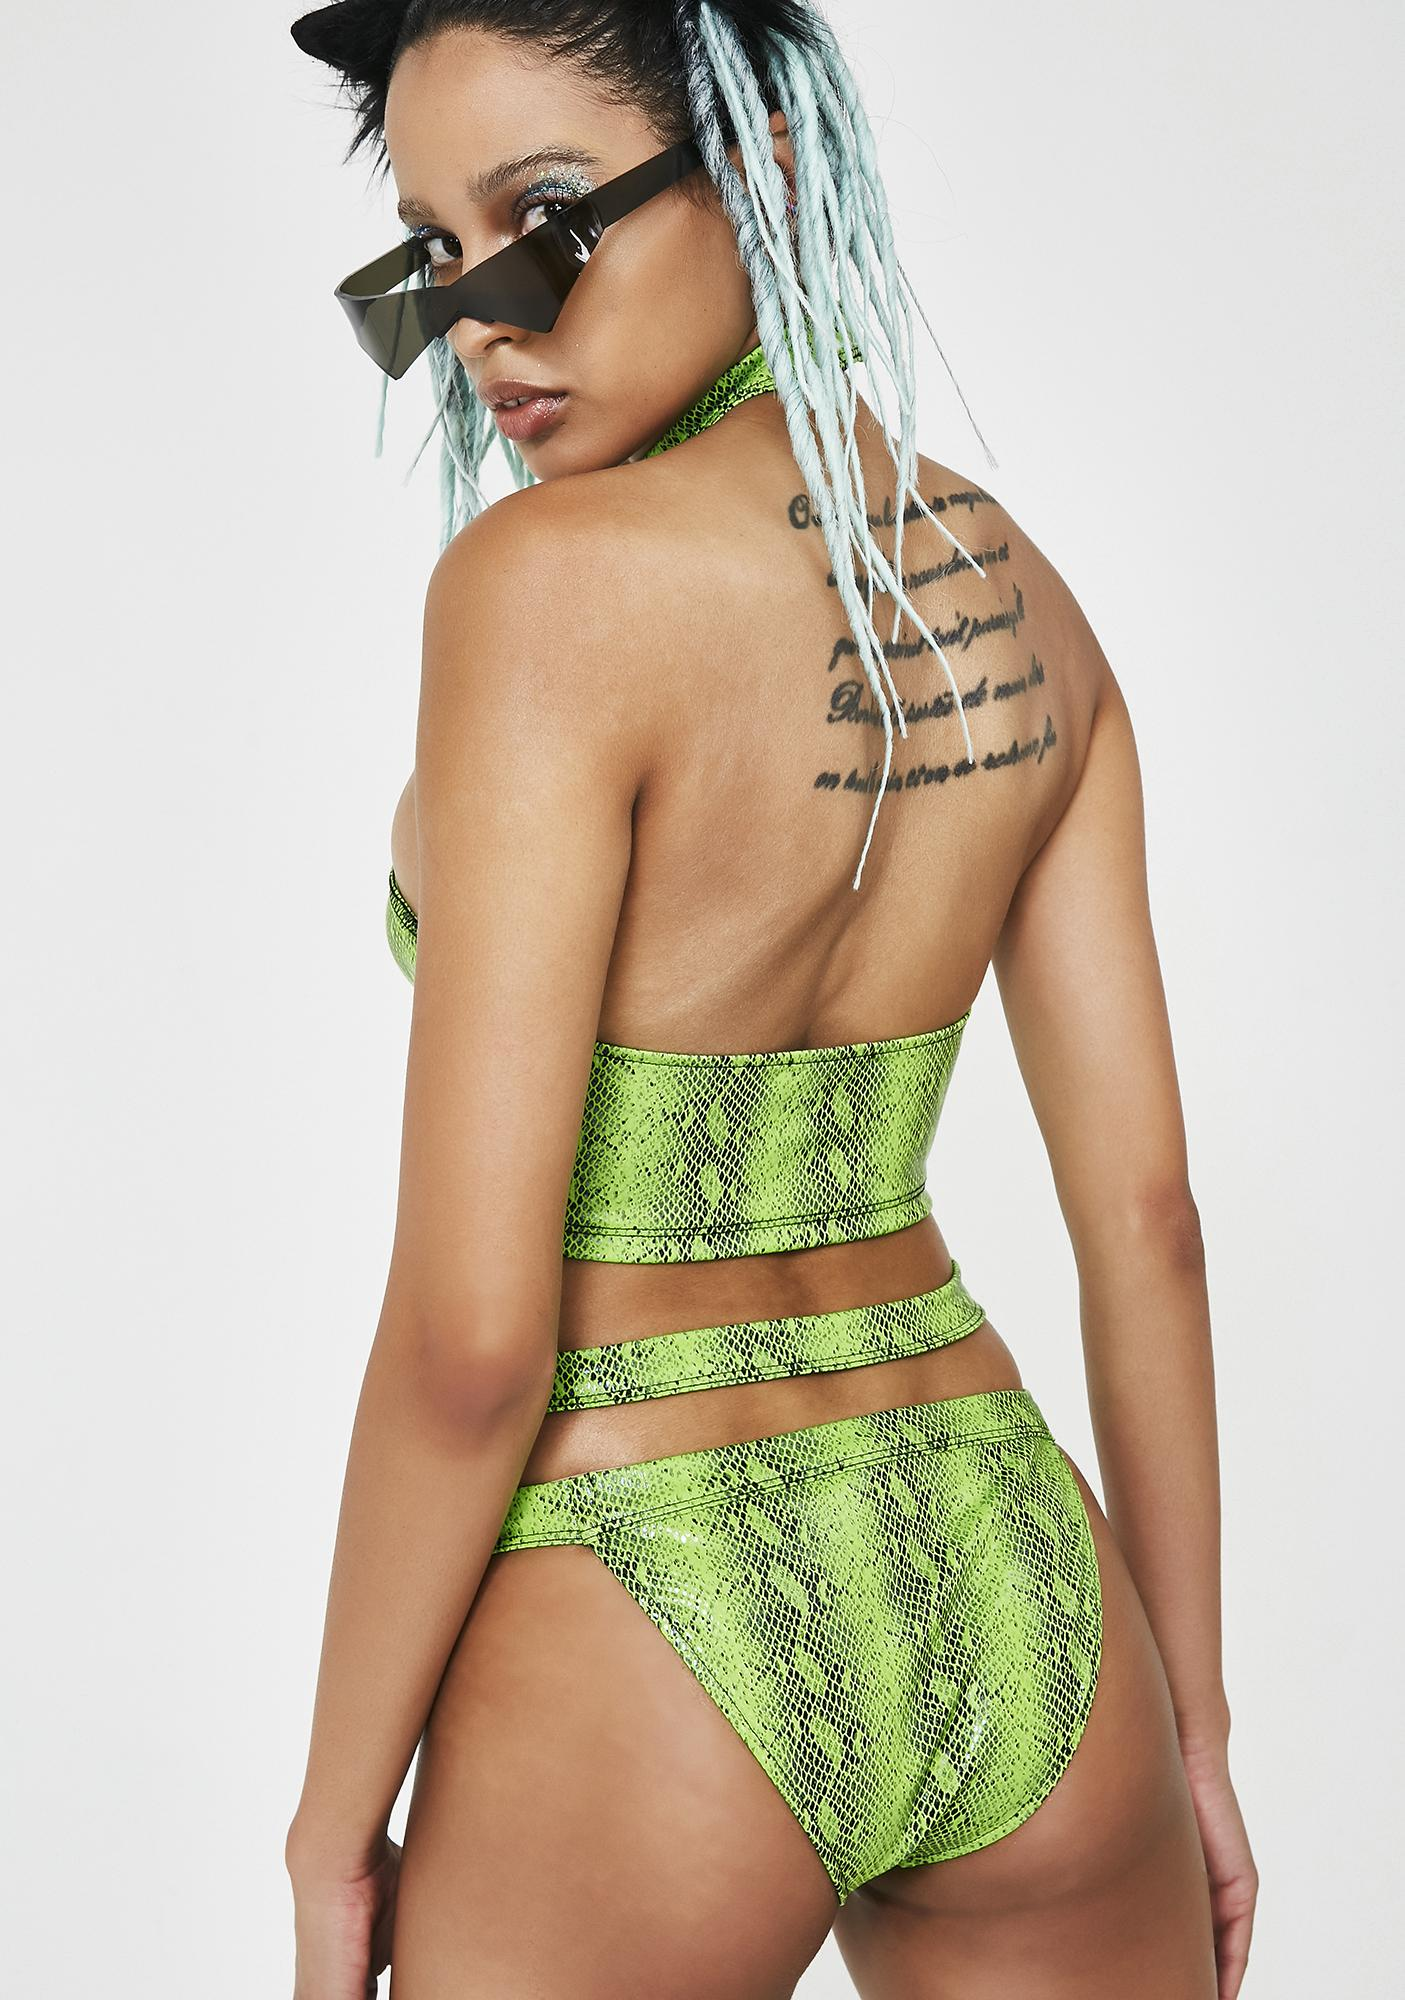 Club Exx OG Sinner Strappy Bottoms